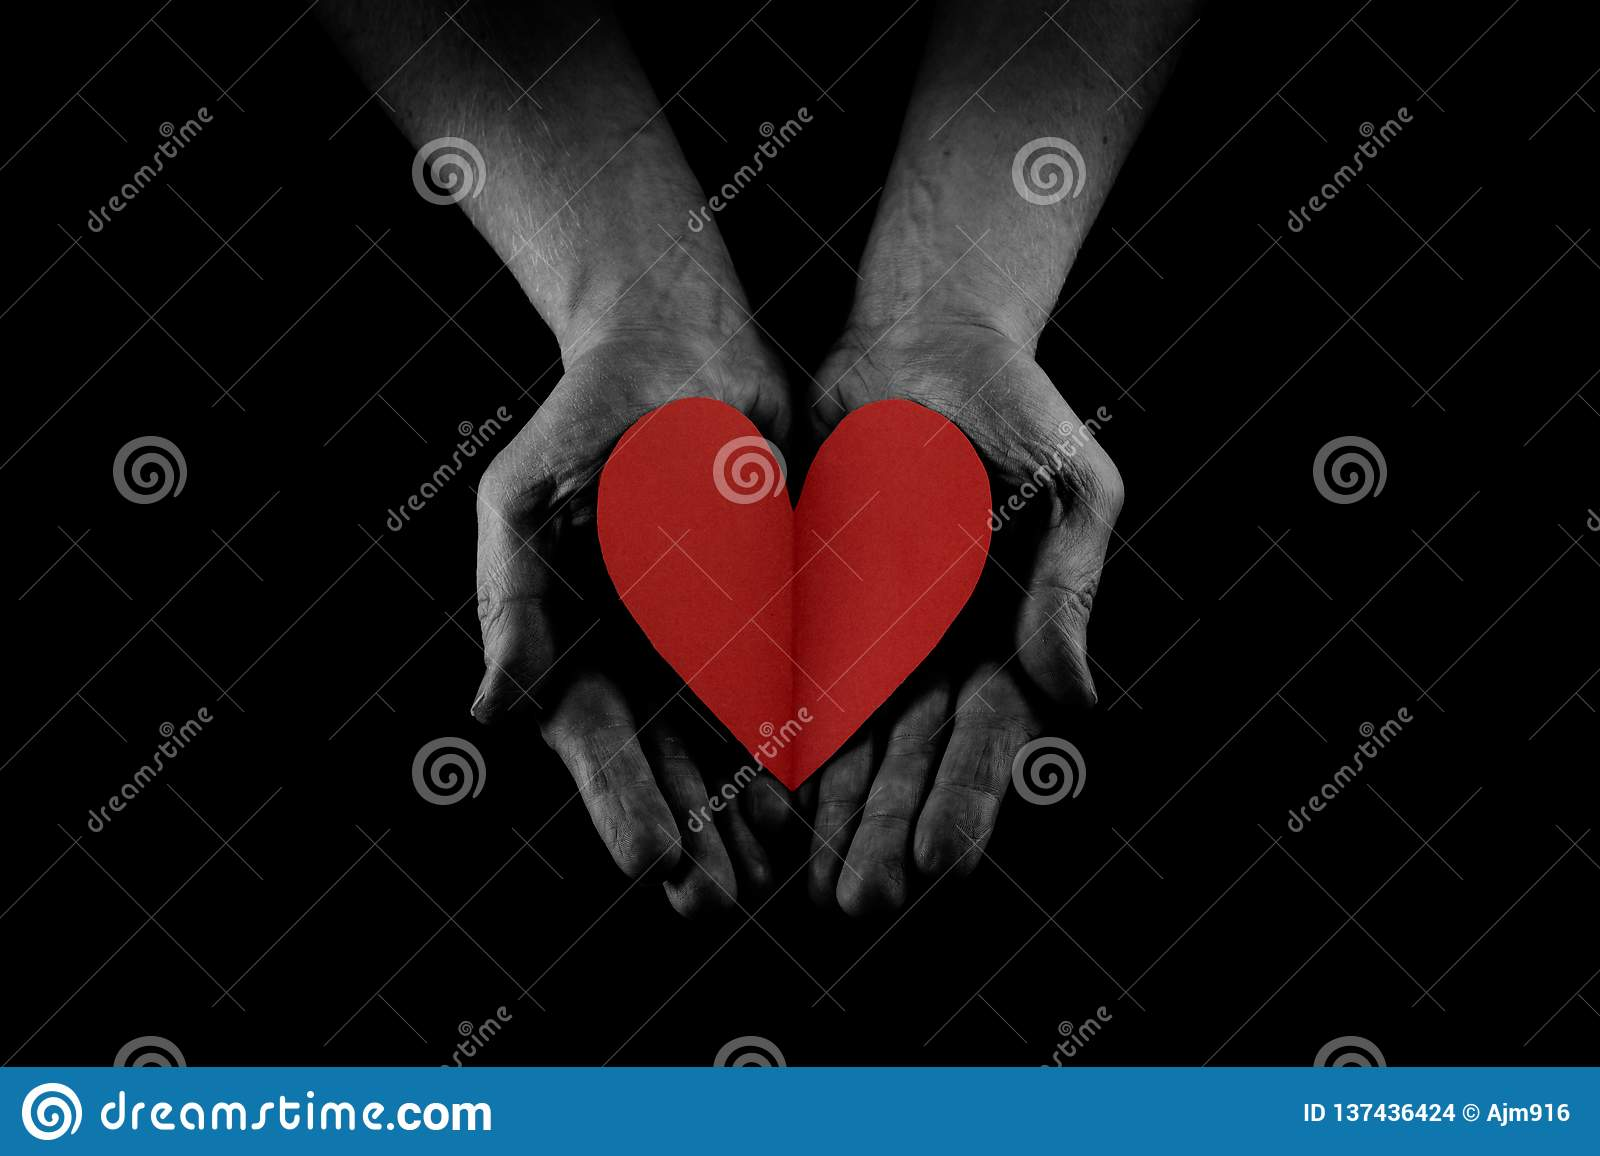 Helping hand concept, Man`s hands palms up holding a Red Heart, giving love, care and support, reaching out